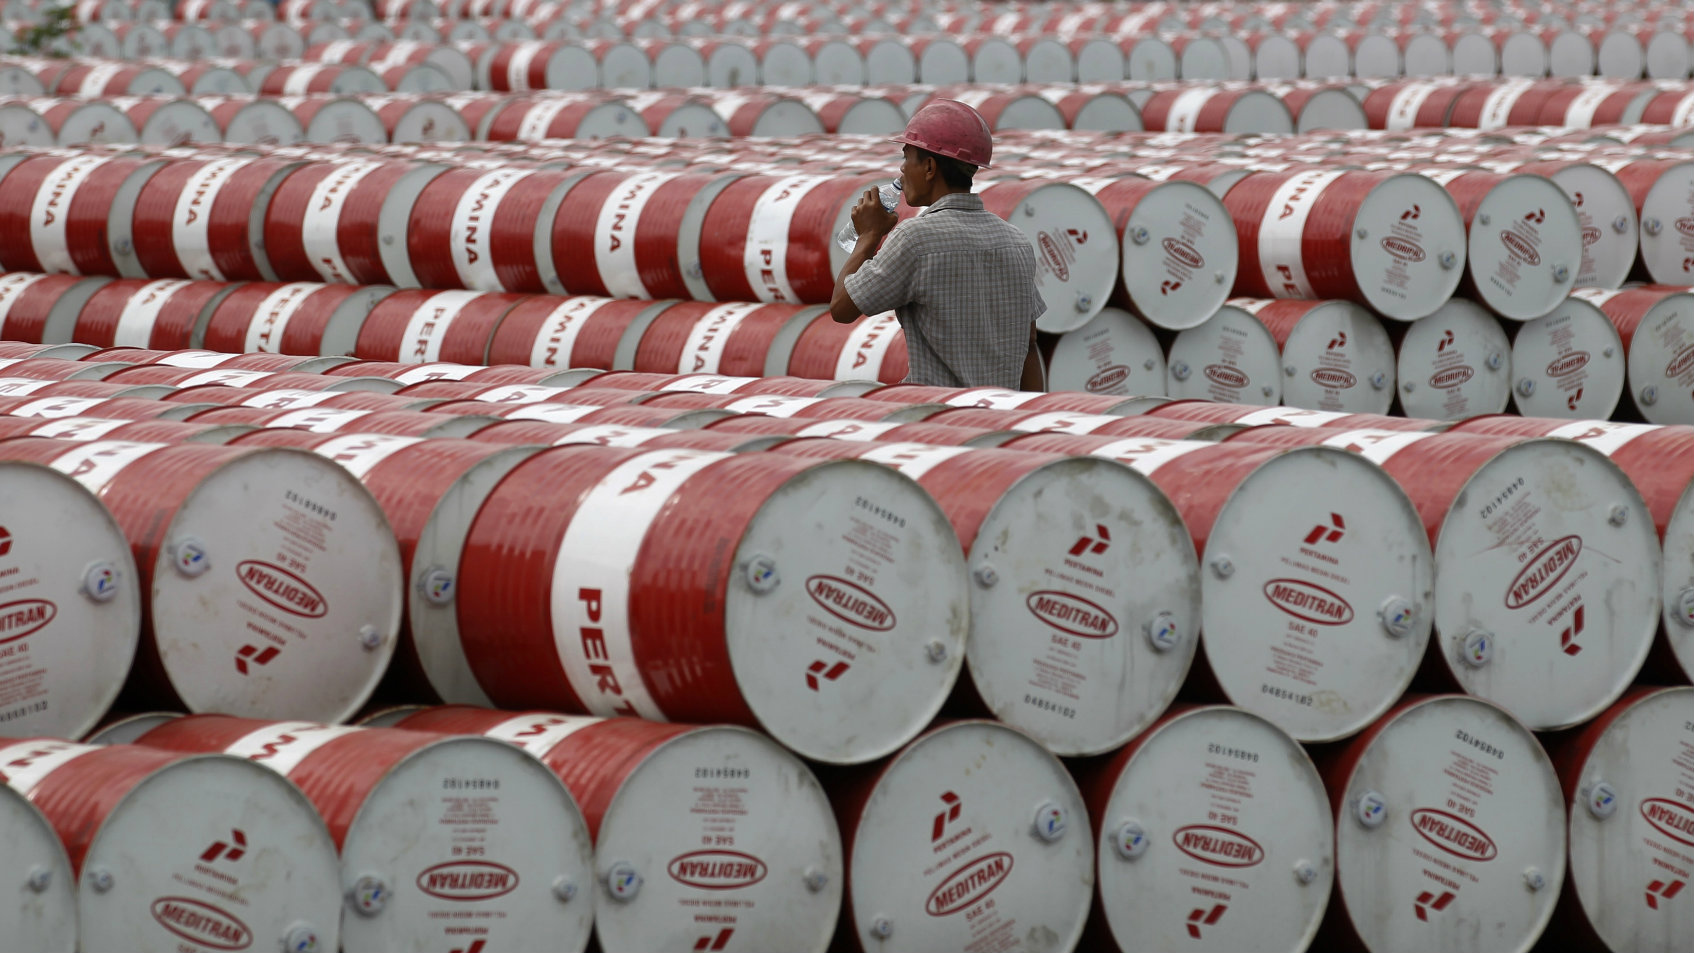 A worker walks in between oil barrels at Pertamina's storage depot in Jakarta January 26, 2011. Indonesian state energy firm Pertamina plans to spend $1 billion in 2011 for acquisitions of  oil and gas blocks, as the country seeks to boost declining production. REUTERS/Supri